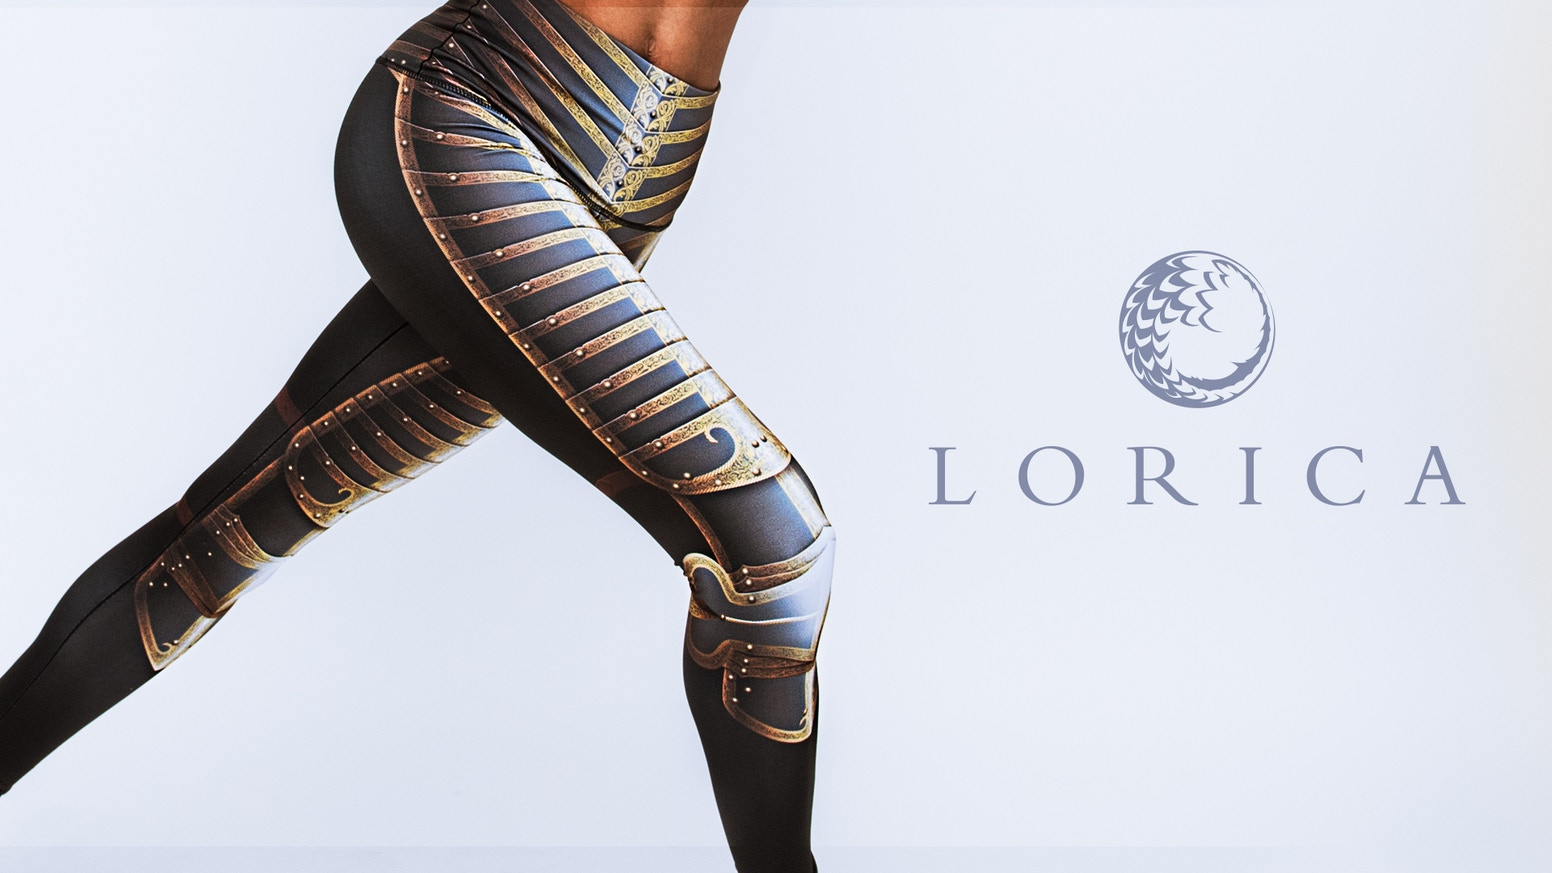 Leggings inspired by armor, history, and geekery. Made in the USA from fabrics derived from recycled plastic bottles.